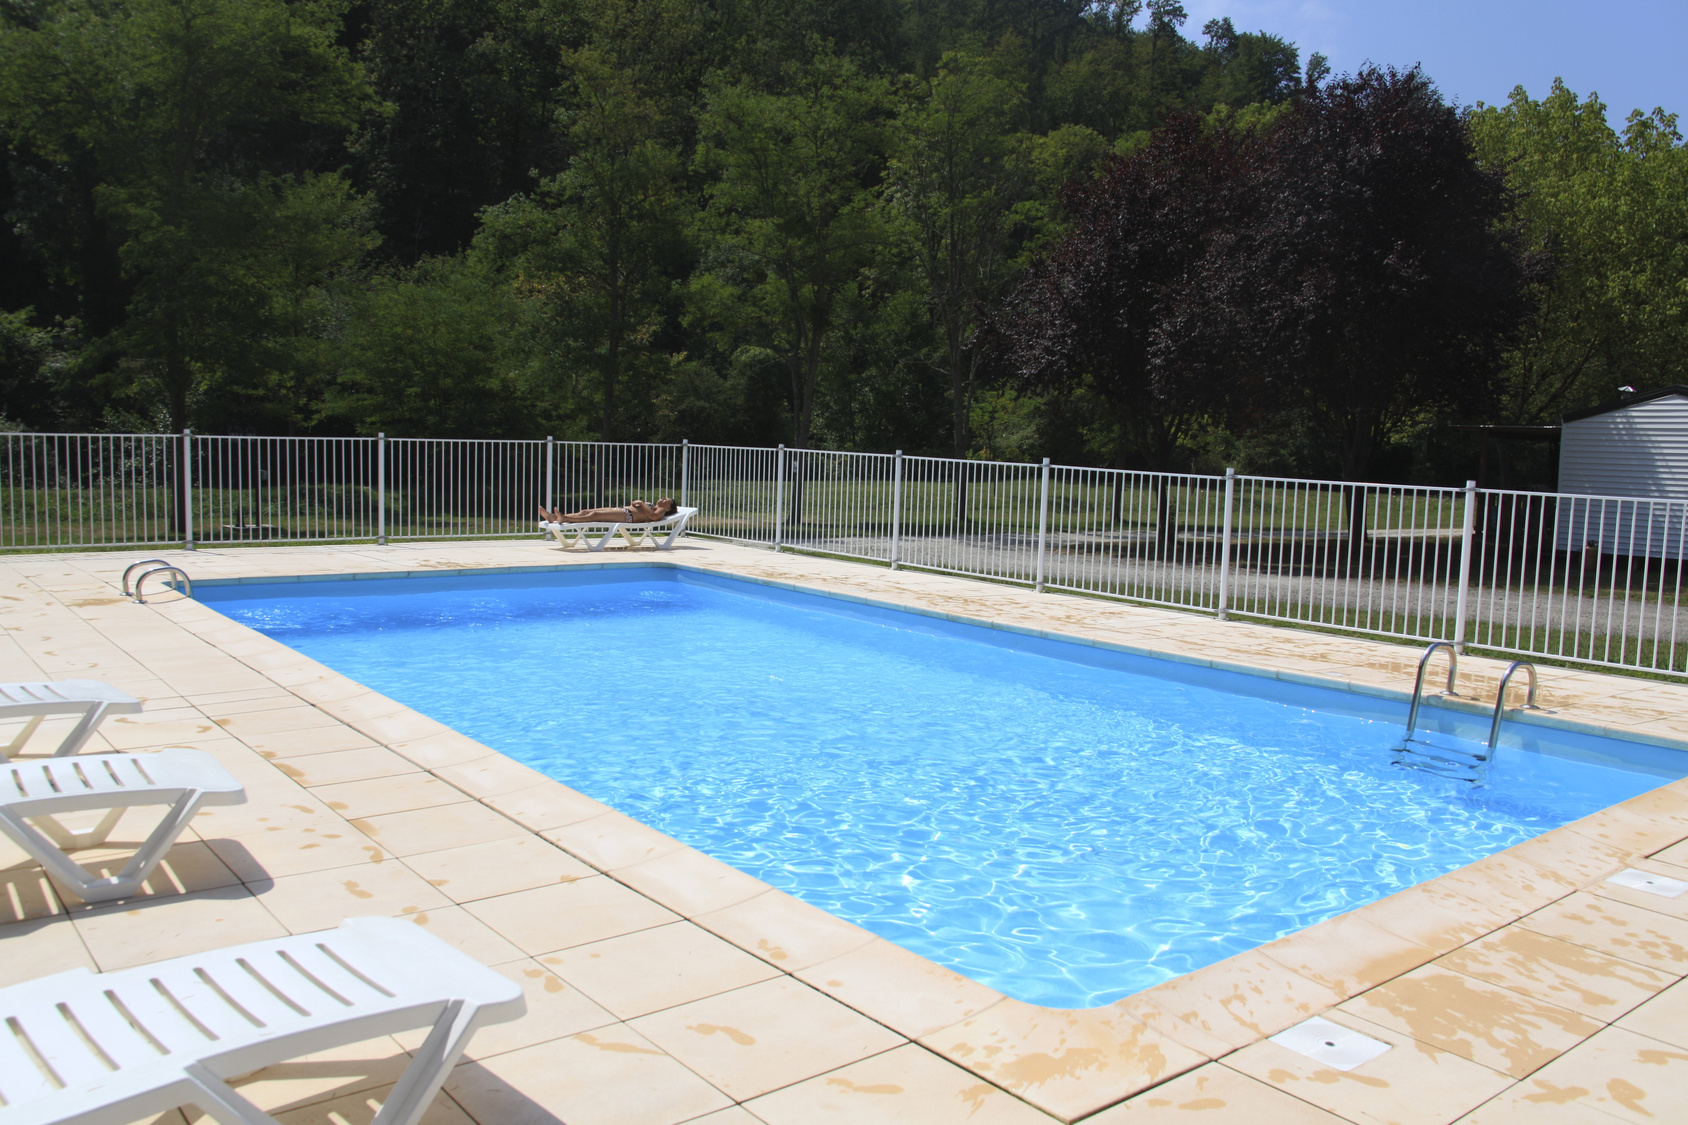 Couverture de piscine b che volet ou abri bienchezmoi for Piscine couverture mobile